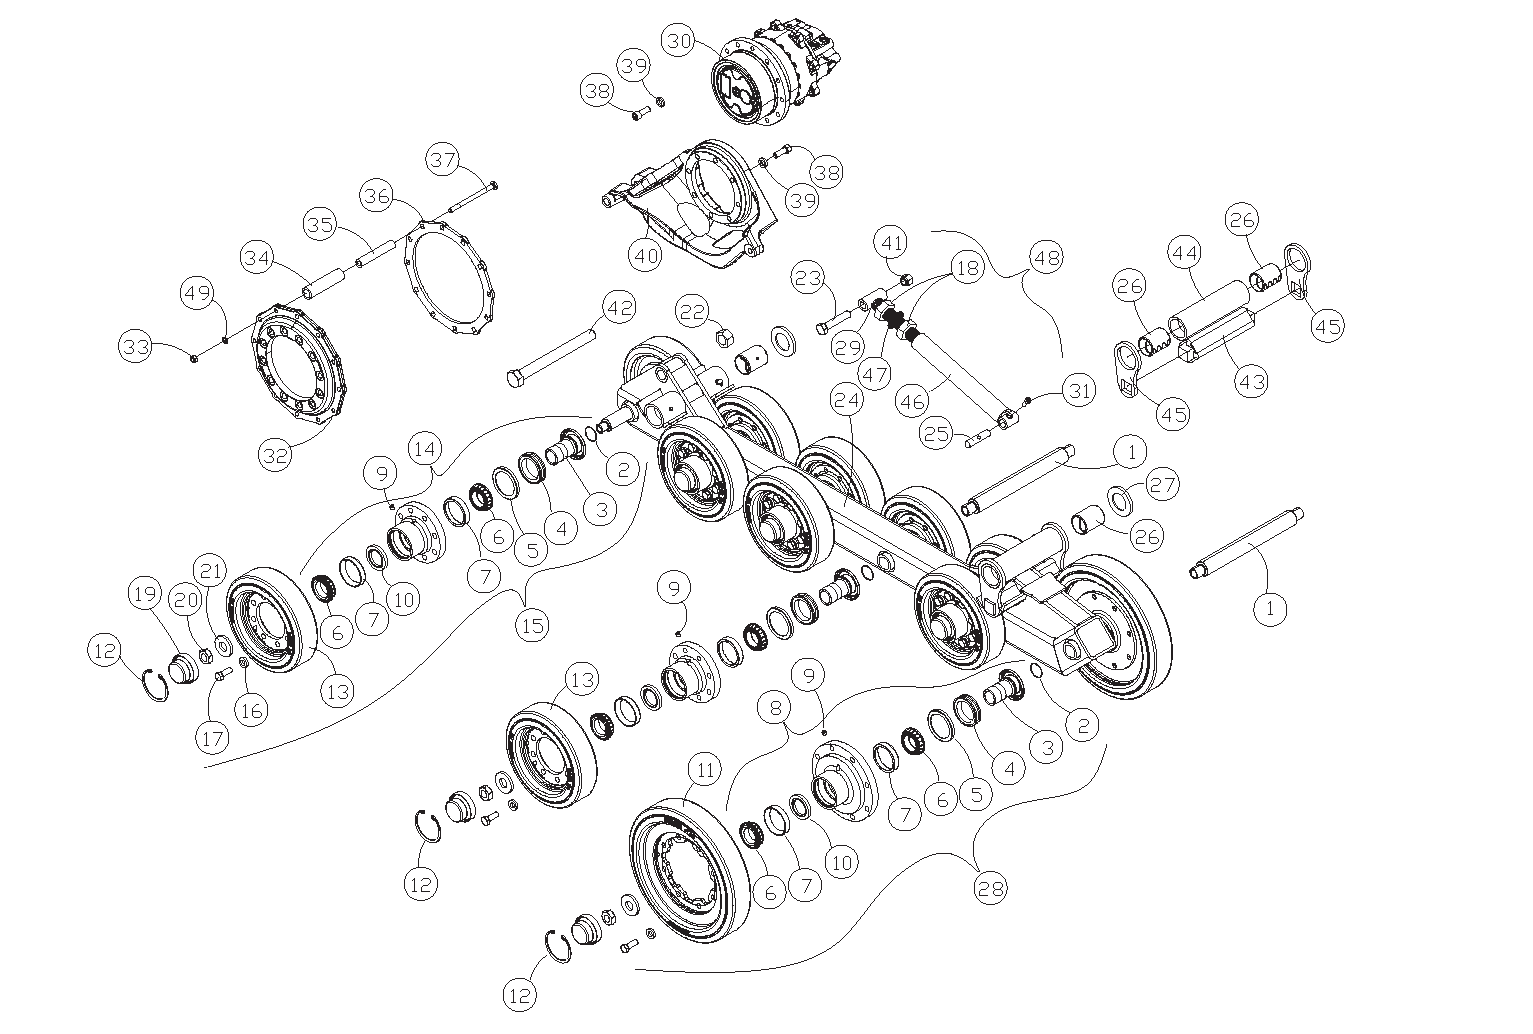 Diagram 13-B Undercarriage Assembly - Right Side